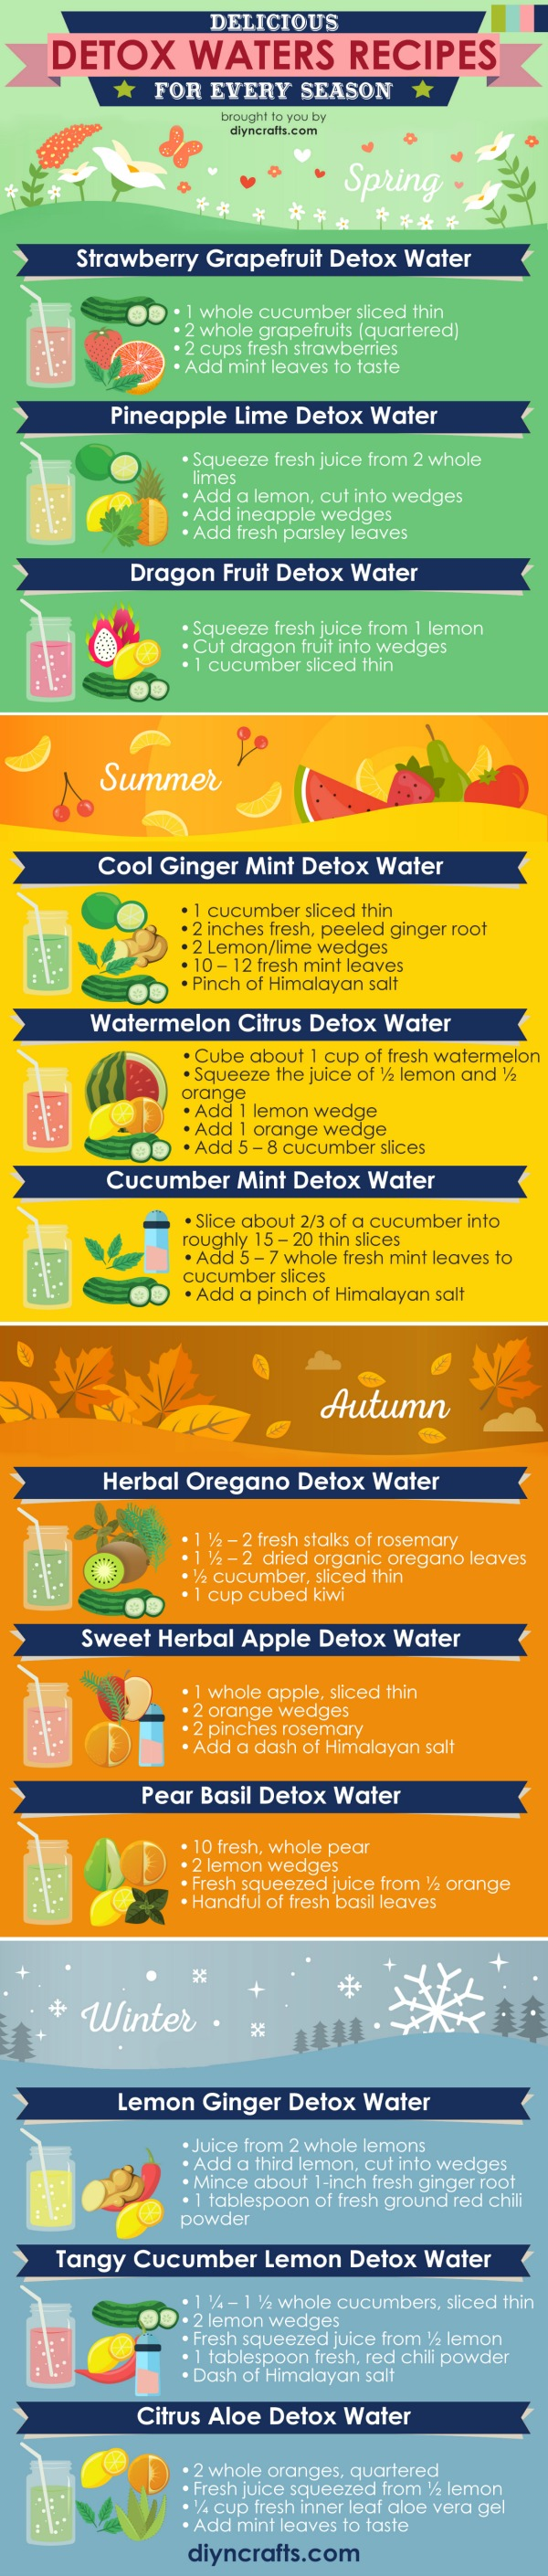 20 Delicious Detox Waters To Cleanse Your Body And Burn Fat Diy